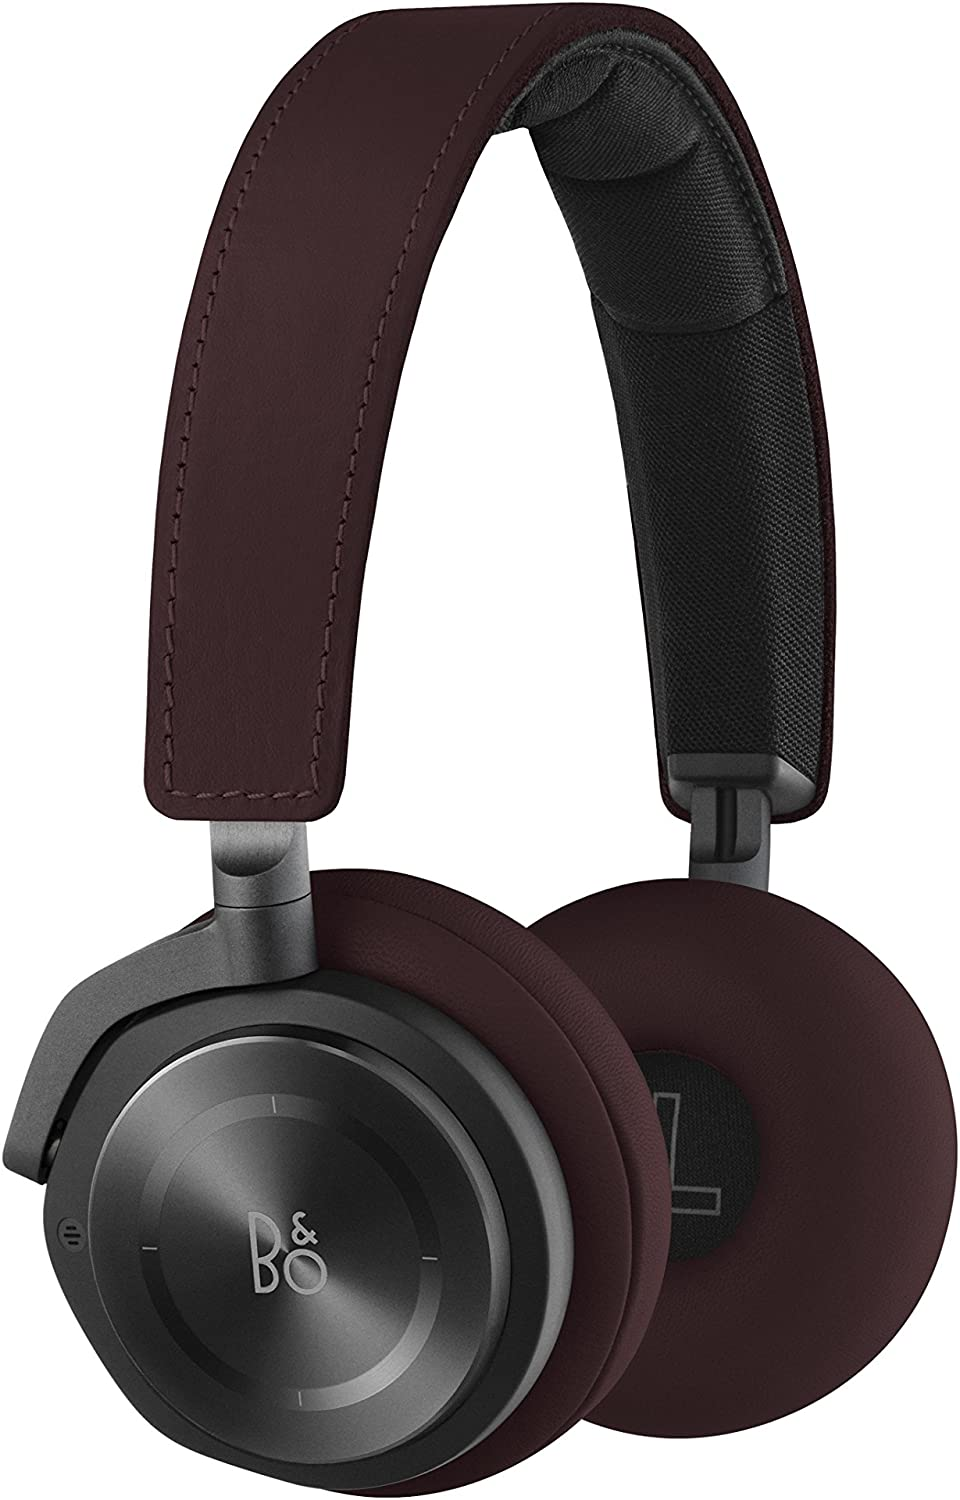 Bang Olufsen Beoplay H8 Wireless On-Ear Headphone with Active Noise Cancelling – Deep Red